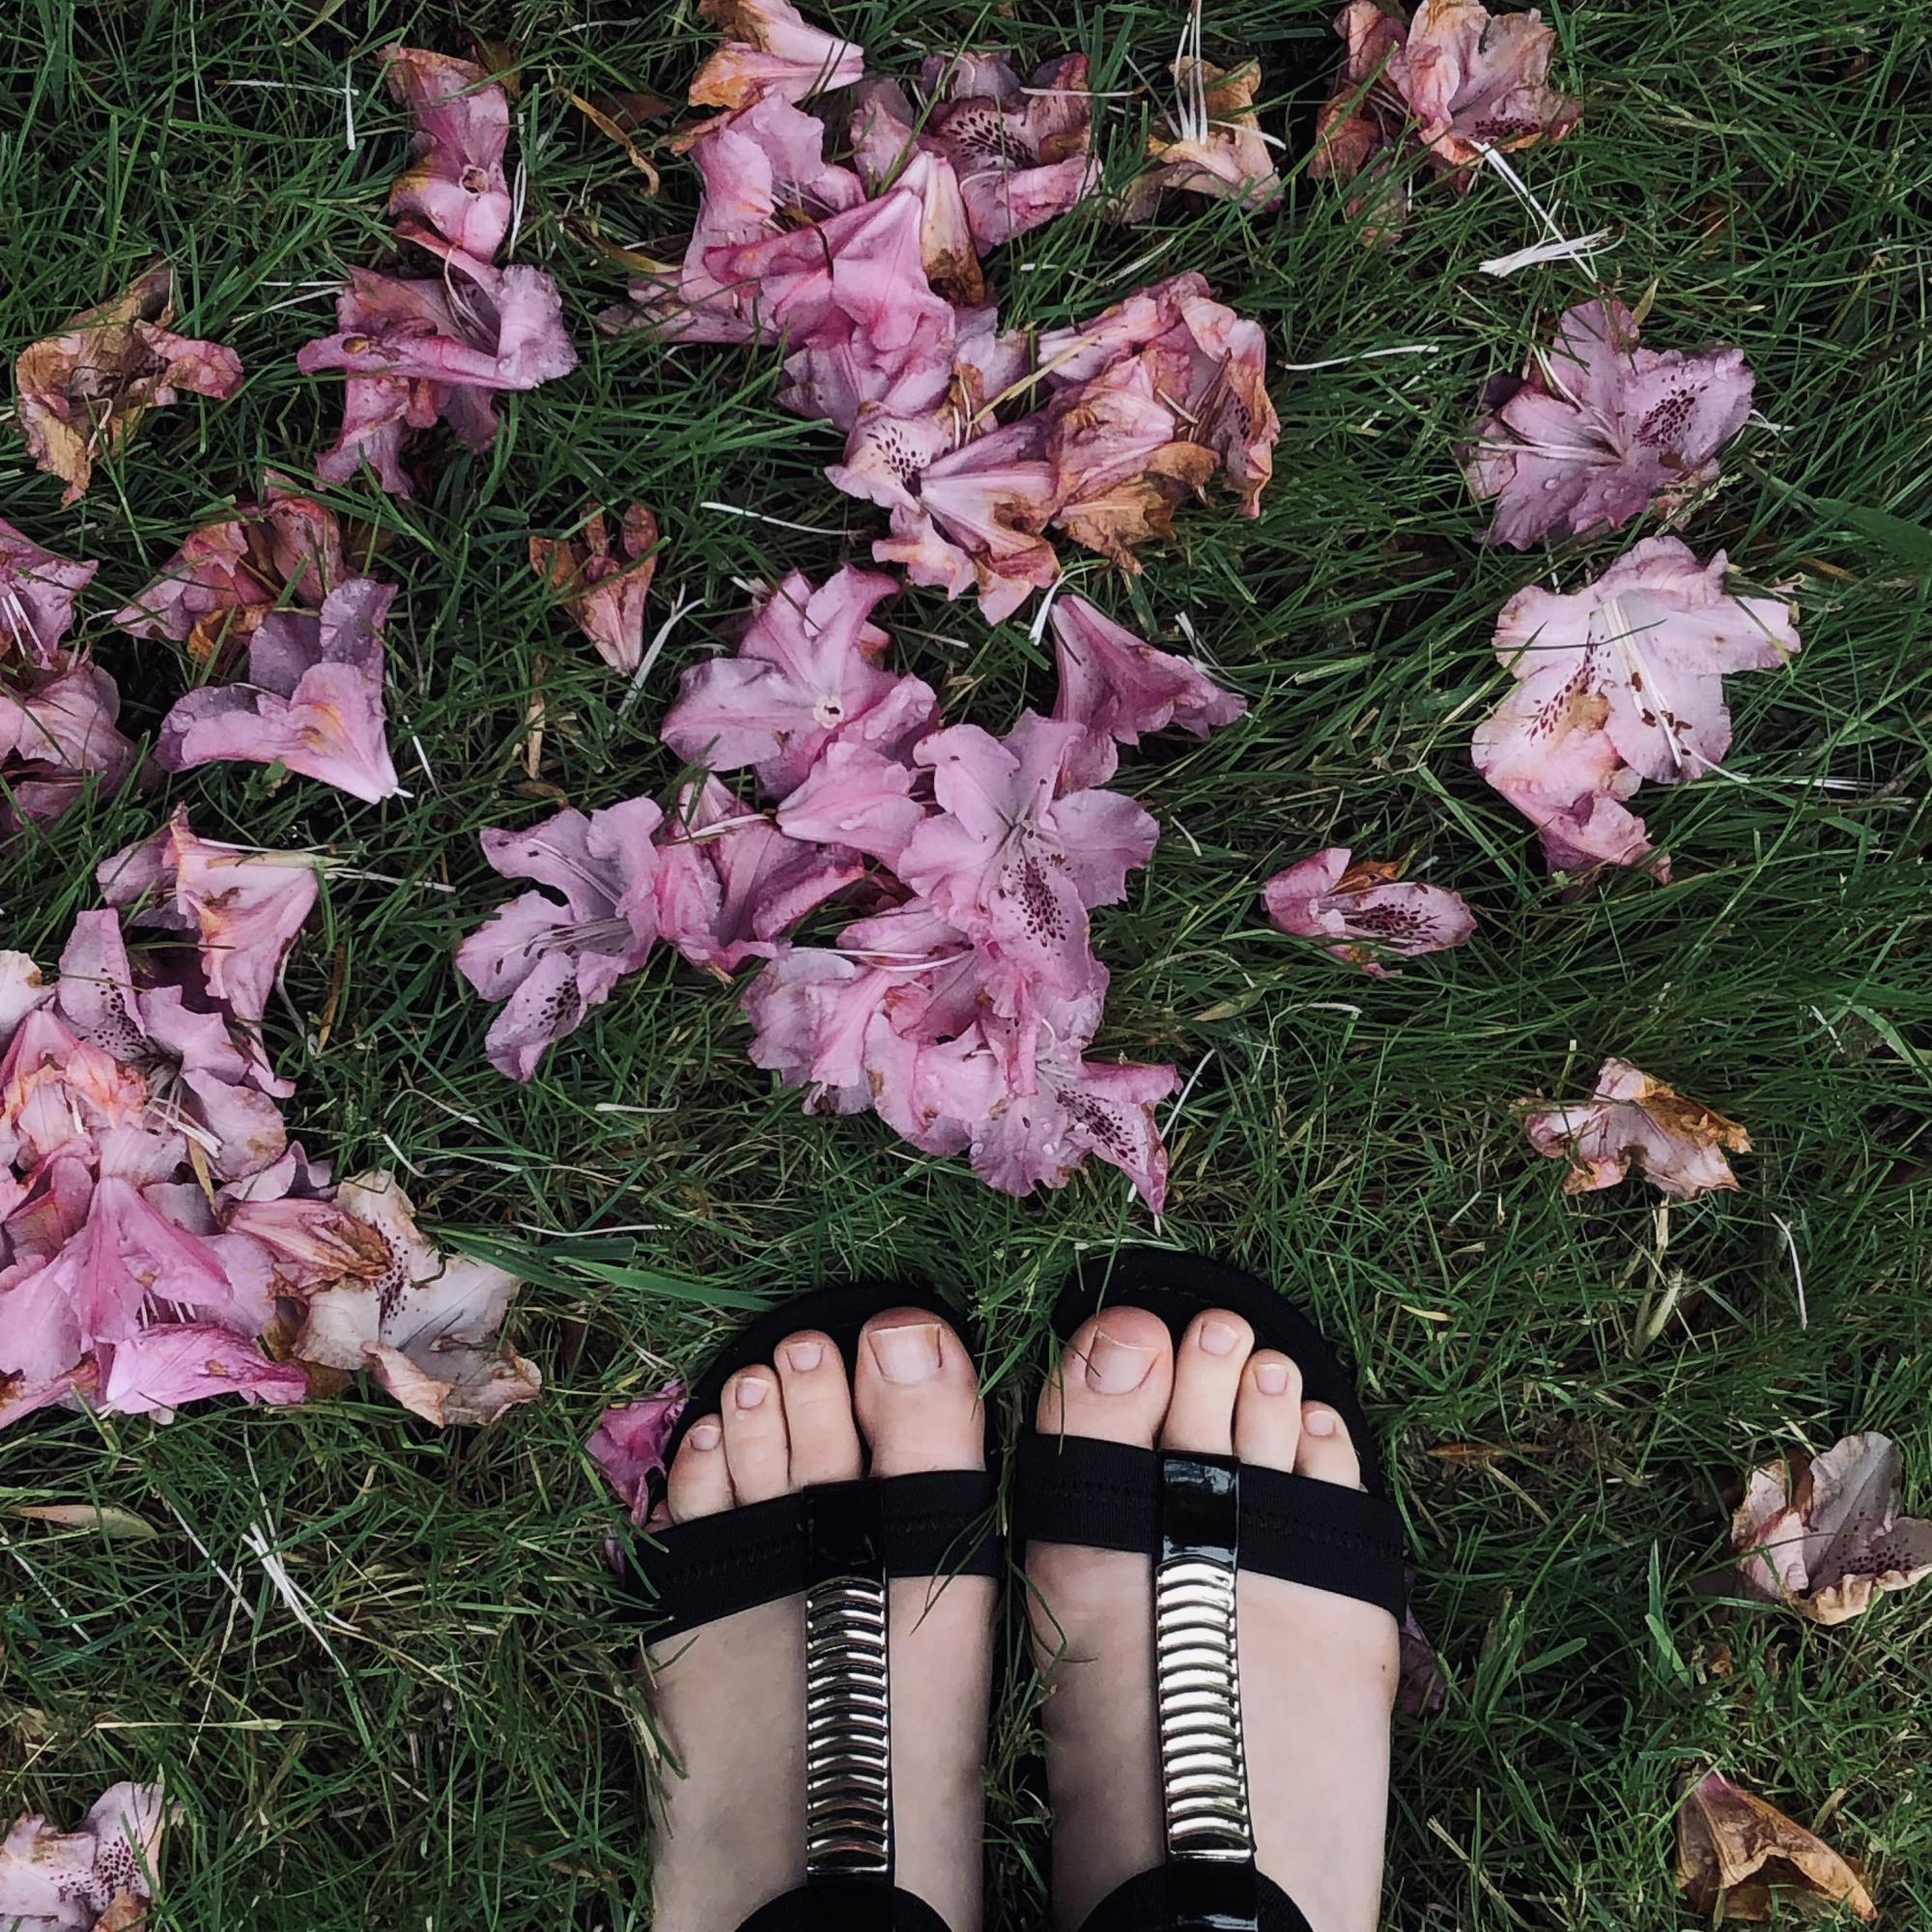 Toes in the spring with fallen petals